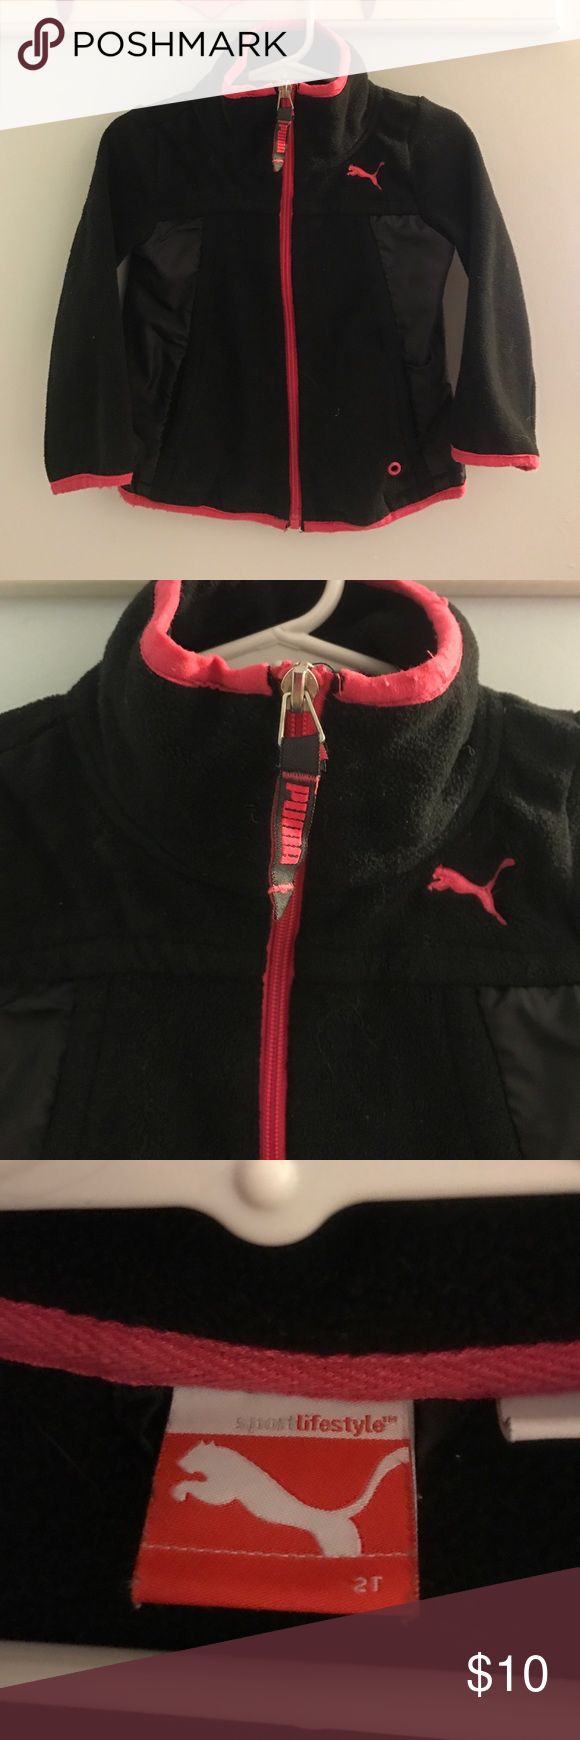 ✨BOGO (see description) Puma Sport Fleece Medium weight black Puma sport fleece zip- up with pockets. There are windbreaker type material on the sides, but those areas are fully lined with fleece as well. No tears or stains. Some piling around wrists and bottom hem. GUC. BOGO half off toddler jackets! Puma Jackets & Coats